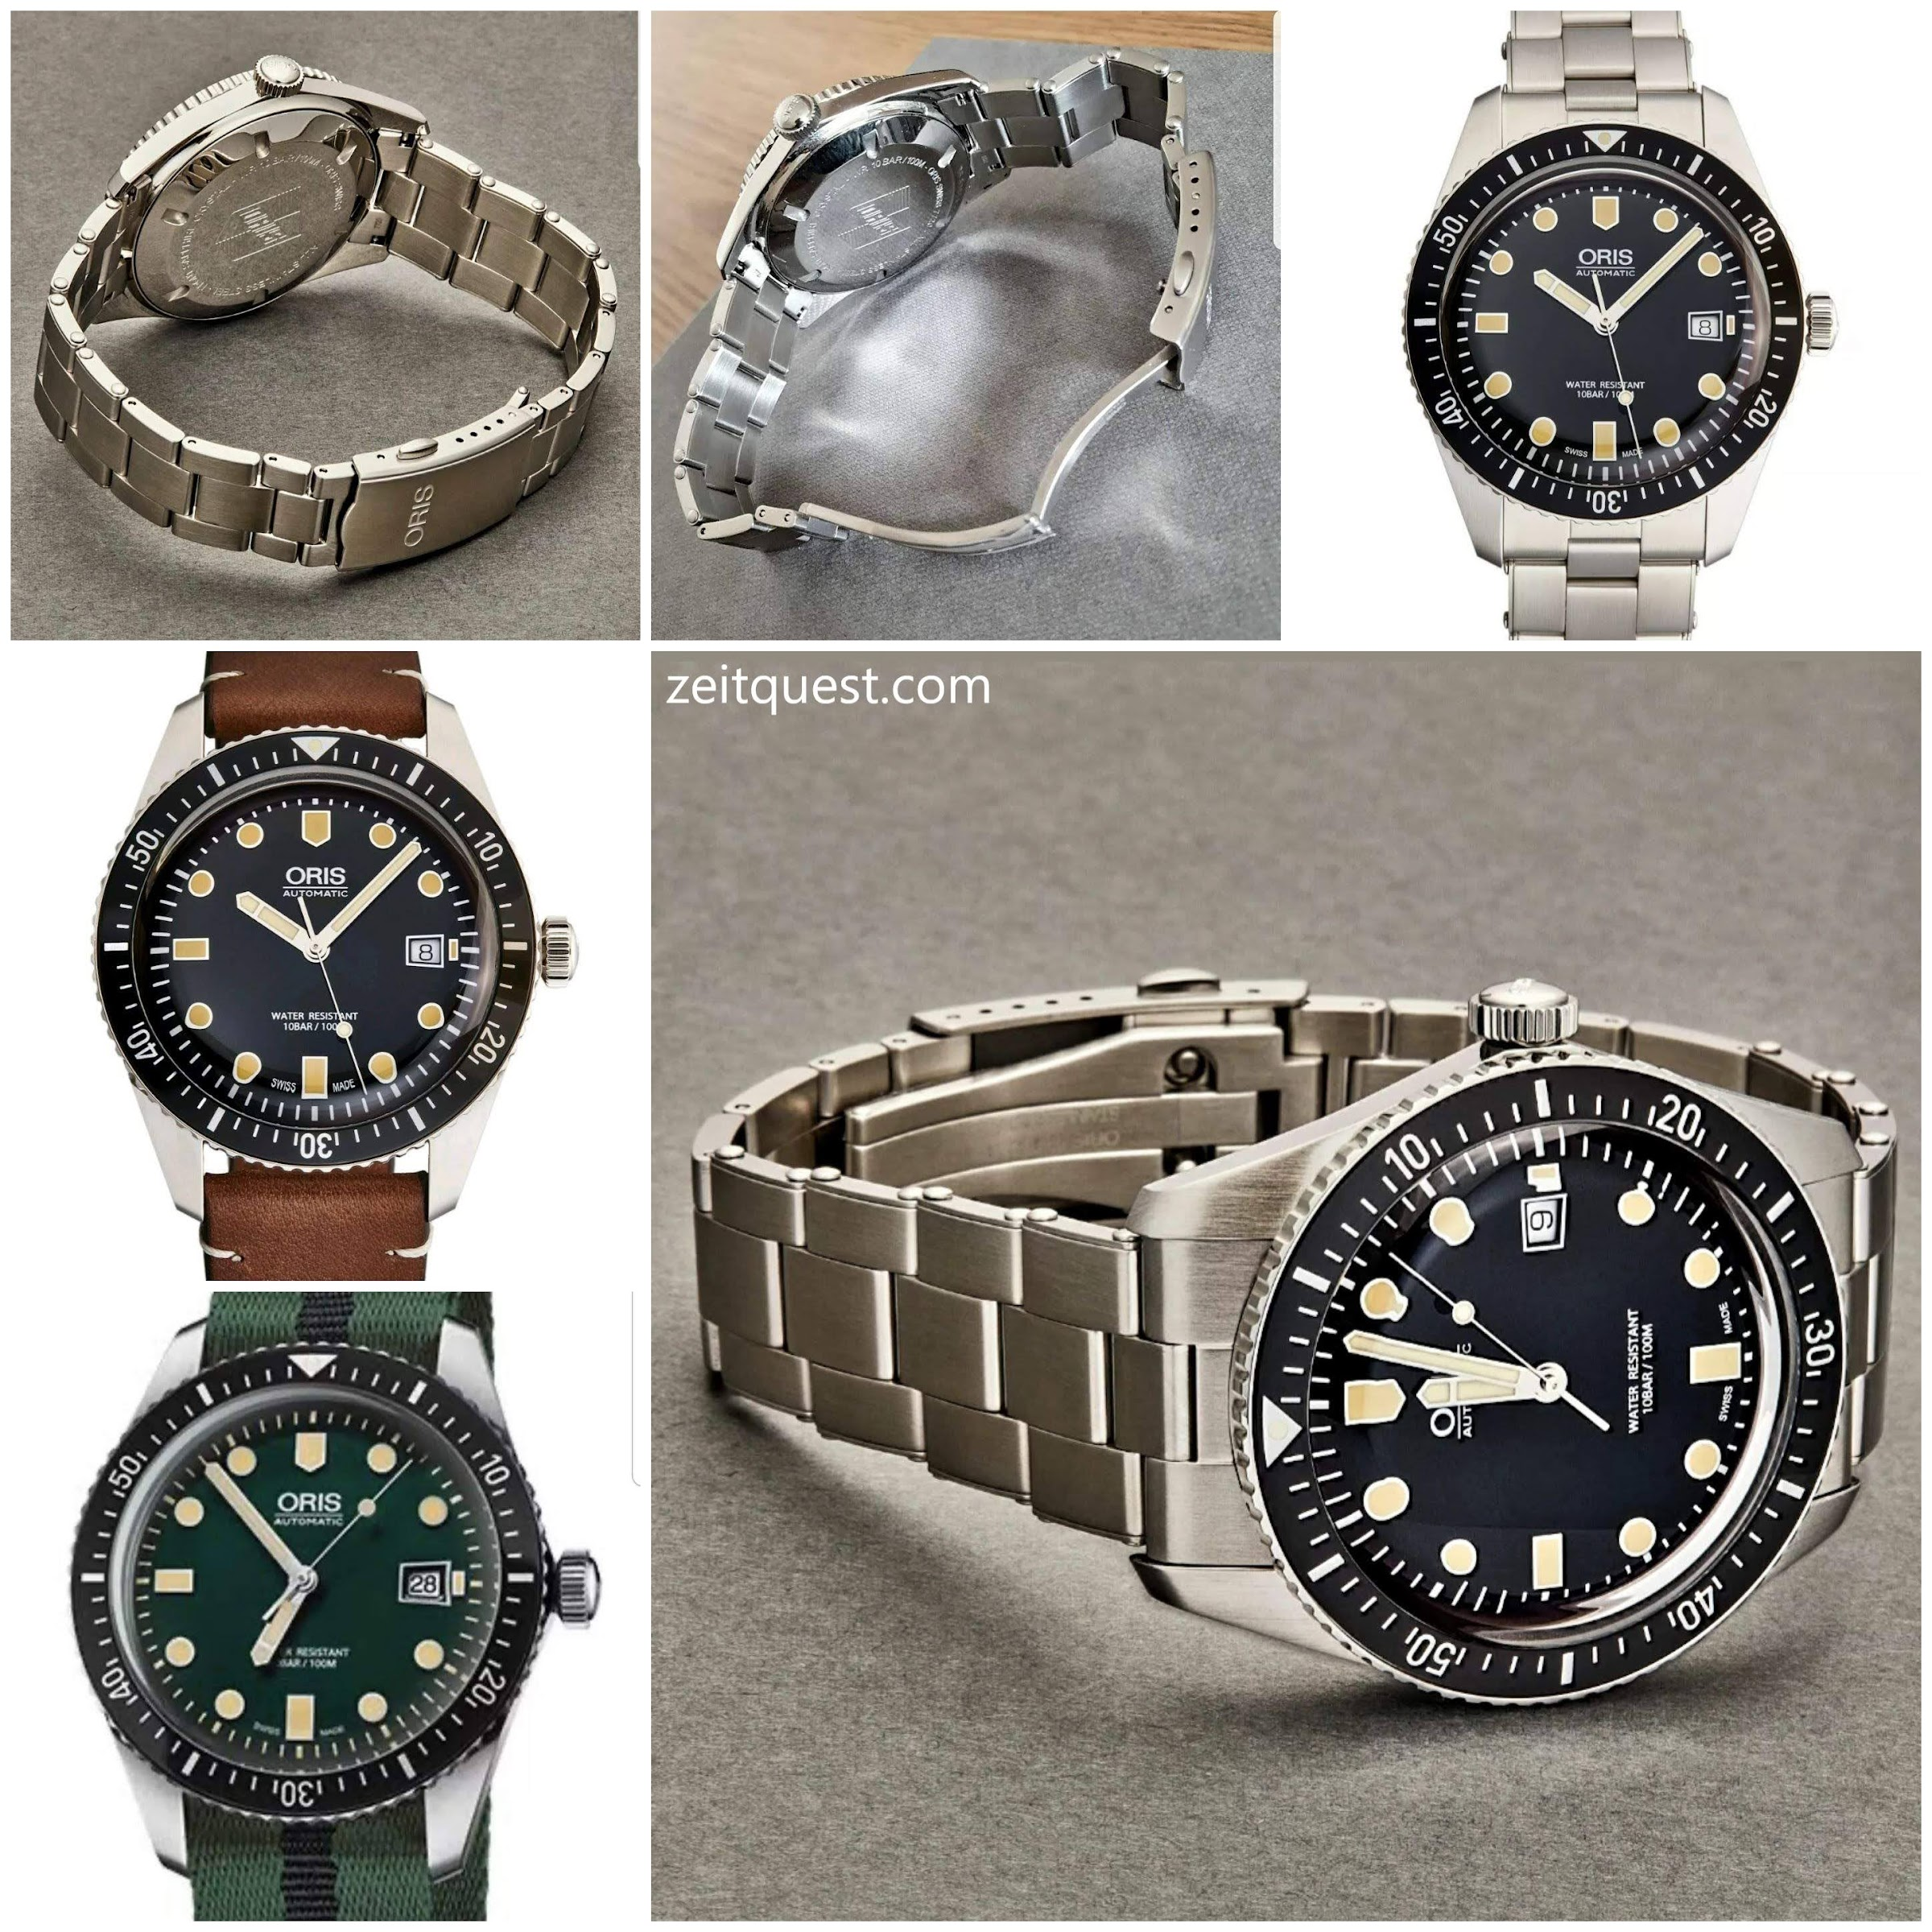 The Oris Sixty Five is a handsome vintage inspired diving watch. It is a re-edition of an old model dating from 1965. It can be seen as a great alternative to the pricey Rolex Submariner. Available on eBay.